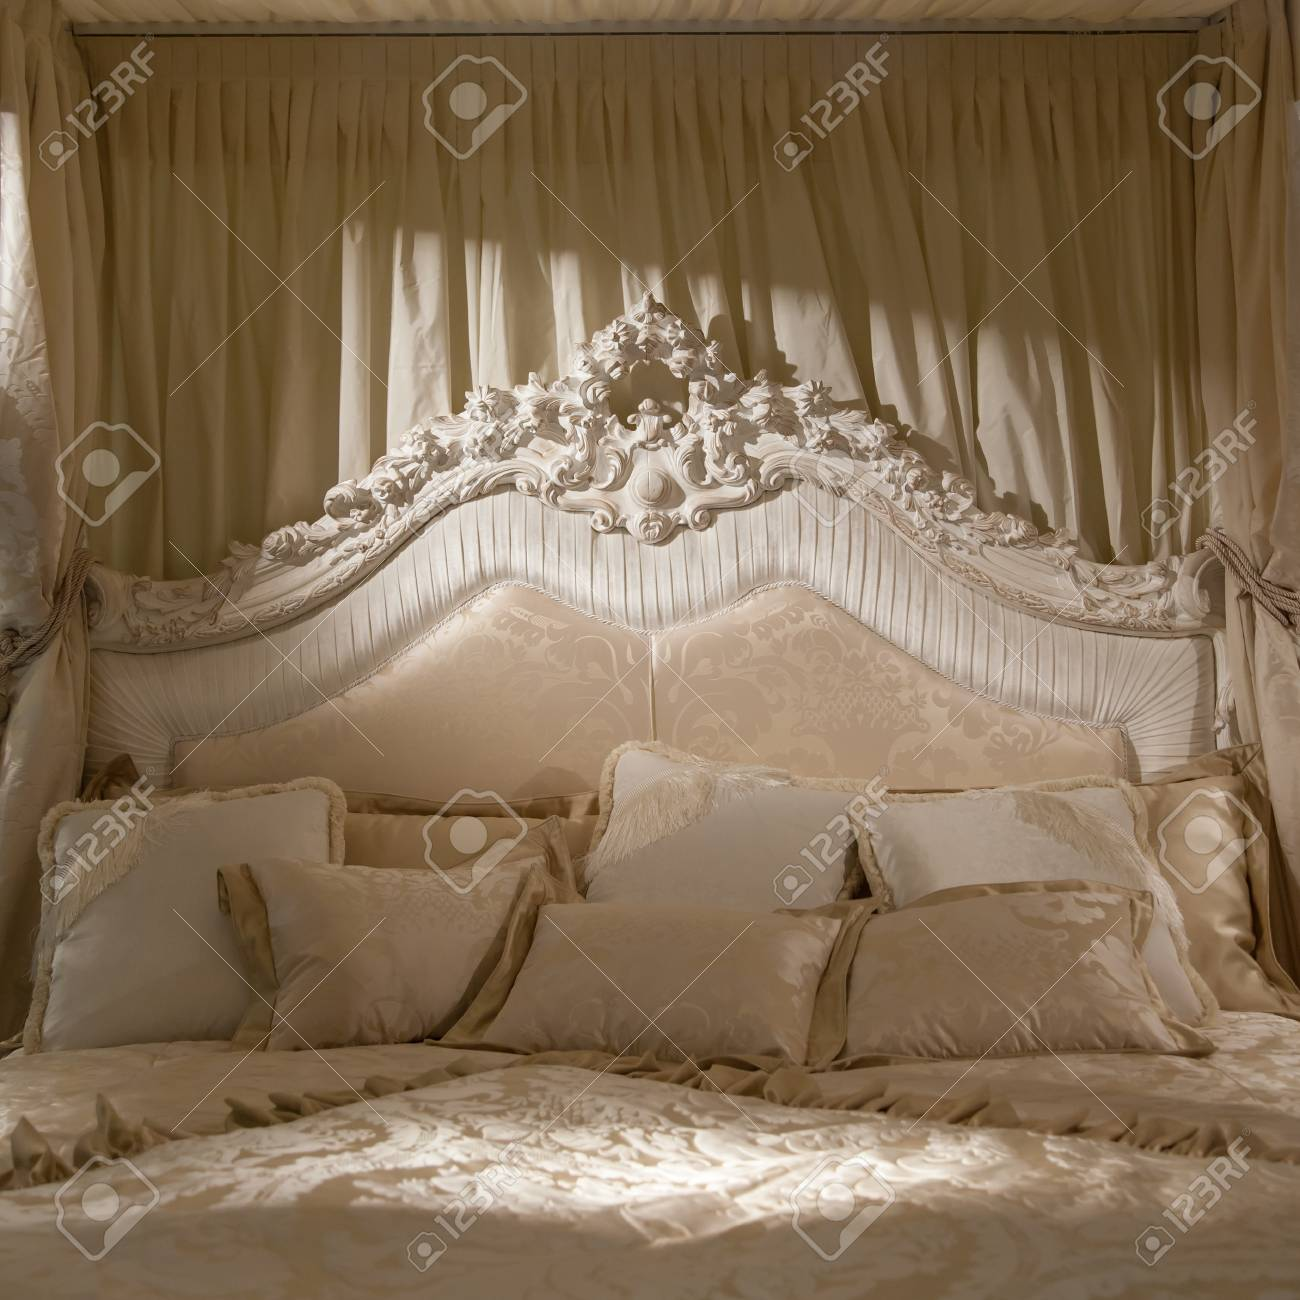 Romantik Schlafzimmer Stock Photo